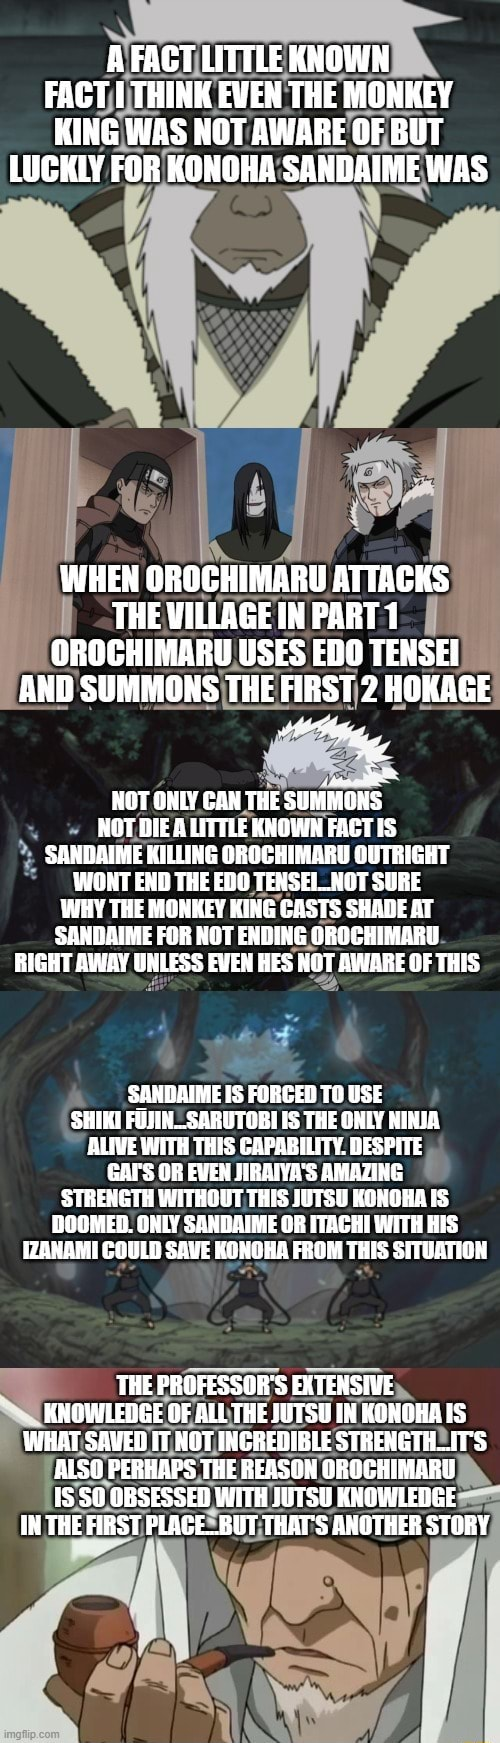 A FACT LITTLE KNOWN FACT THINK EVEN THE MONKEY KING WAS NOT AWARE OF BUT LUGKLY FOR KONOHA SANDAIME WAS WHEN OROCHIMARU ATTACKS THE VILLAGE IN PART 1 OROCHIMARU USES EDO TENSEI AND SUMMONS THE FIRST 2 HOKAGE NOT ONLY CAN THE SUMMONS NOT DIE LITTLE KNOWN FACT IS SANDAIME KILLING OROCHIMARU OUTRIGHT WONT END THE EDO TENSEI NOT SURE WHY THE MONKEY KING CASTS SHADE AT SANDAIME FOR NOT ENDING OROCHIMARU RIGHT AWAY UNLESS EVEN HES NOT AWARE OF THIS SANDAIME IS FORGED TO USE SHIKI FOJIN SARUTOBI THE ONLY NINJA ALIVE WITH THIS CAPABILITY. DESPITE GAI'S OR EVEN JIRAIYA'S AMAZING STRENGTH WITHGUT THIS JUTSU KONOHA IS DOOMED. ONLY SANDAIME OR ITACHI WITH HIS IZANAMI COULD SAVE KONOHA FROM THIS SITUATION THE PROFESSOR'S EXTENSIVE KNOWLEDGE OF ALL THE JUTSU IN KONOHA IS WHAT SAVED IT HOT INGREDIBLE STR